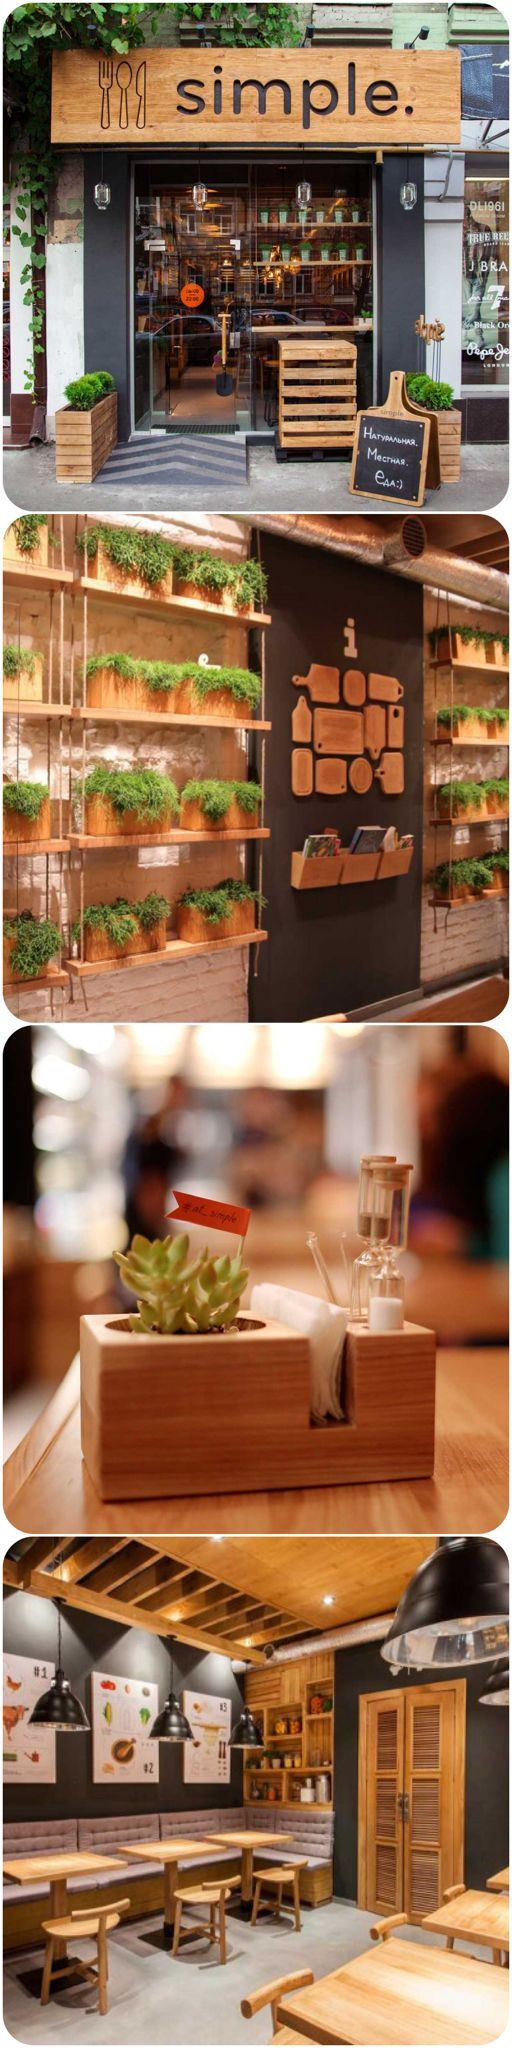 Fast food restaurant decor ideas - Best 25 Fast Food Restaurant Ideas On Pinterest Fast Food Logos Store Front Design And Store